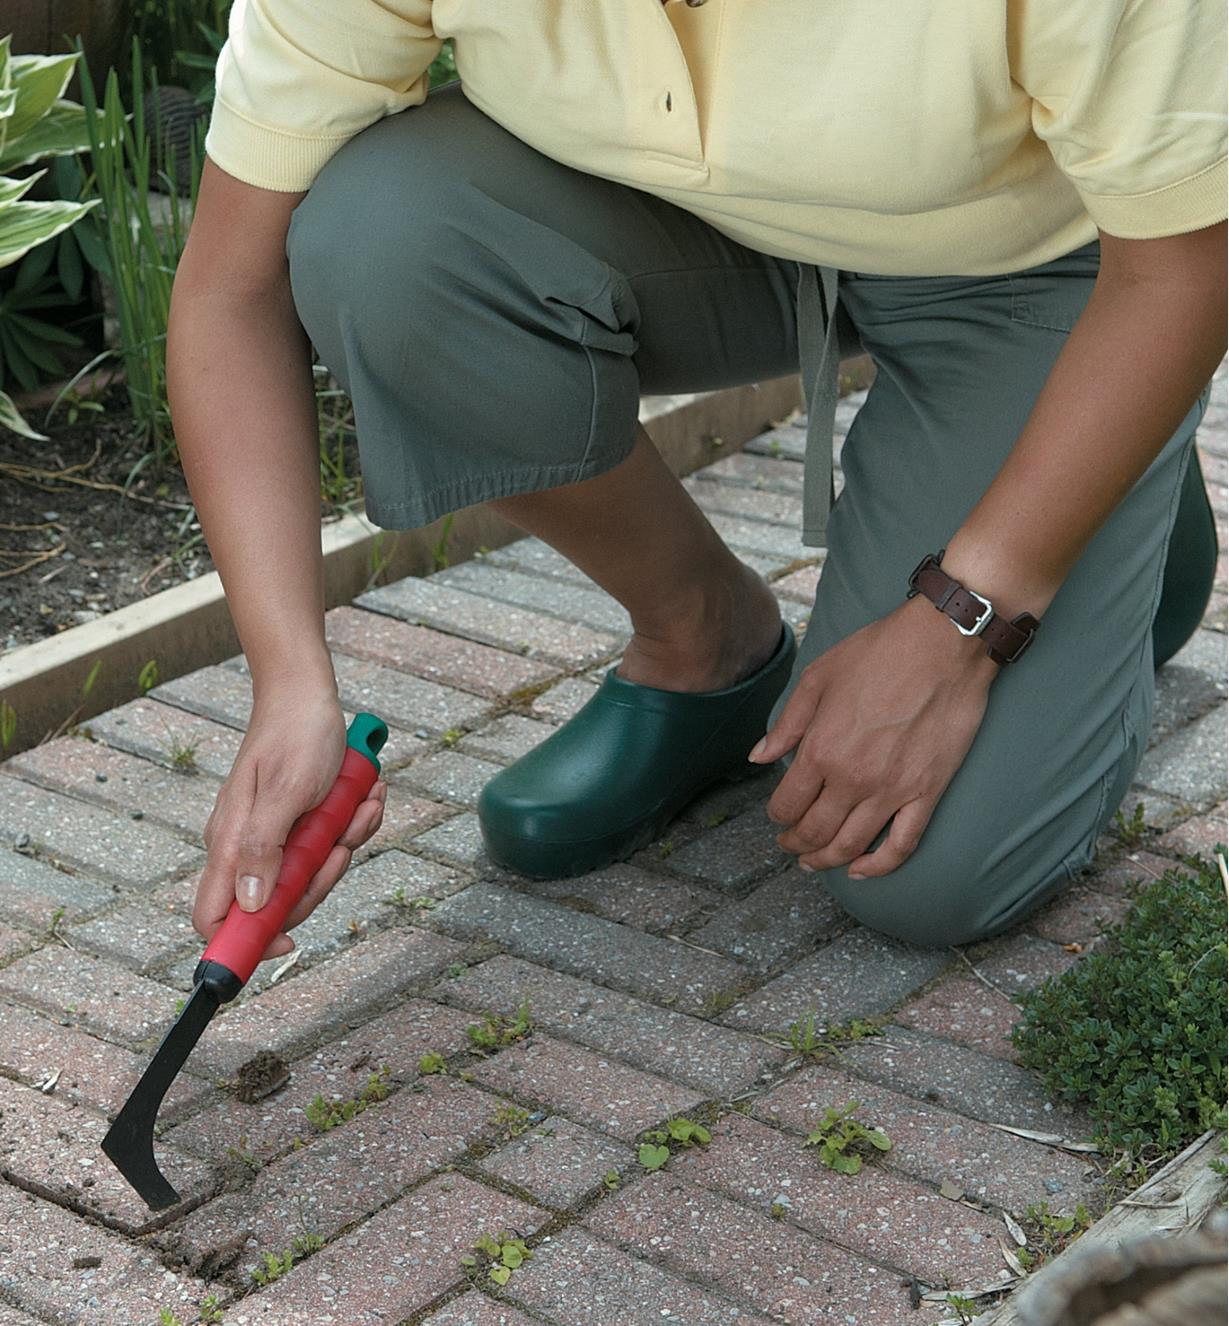 Weeding between patio stones with the Crack Weeder